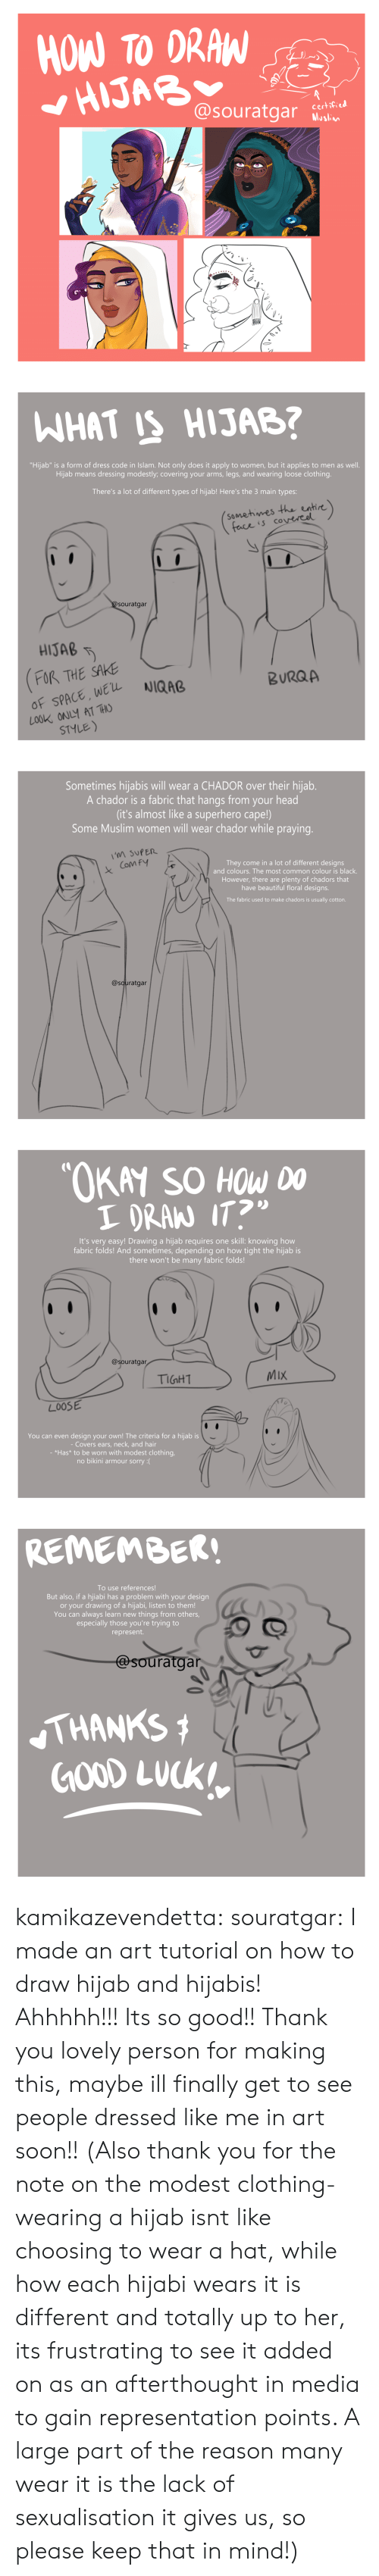 "modest: HOW TO DRAW  HIJAB  @souratgar  certified  Muslim   WHAT IS HIJAB?  ""Hijab"" is a form of dress code in Islam. Not only does it apply to women, but it applies to men as well.  Hijab means dressing modestly; covering your arms, legs, and wearing loose clothing.  There's a lot of different types of hijab! Here's the 3 main types:  (somehimes the entire)  face is covereel  @Souratgar  HIJAB  FOR THE SAKE  OF SPACE, WEL  LOOK ONLY AT THO  STYLE)  NIQAB  BURQA   Sometimes hijabis will wear a CHADOR over their hijab.  A chador is a fabric that hangs from your head  (it's almost like a superhero cape!)  Some Muslim women will wear chador while praying.  M SUPER  They come in a lot of different designs  and colours. The most common colour is black.  Com FY  However, there are plenty of chadors that  have beautiful floral designs.  The fabric used to make chadors is usually cotton.  @souratgar   ""OKAY SO HOW DO  I DRAN IT?  It's very easy! Drawing a hijab requi res one skill: knowing how  fabric folds! And sometimes, depending on how tight the hijab is  there won't be many fabric folds!  @souratgar  MIX  TIGHT  LOOSE  You can even design your own! The criteria for a hijab is  - Covers ears, neck, and hair  - *Has* to be worn with modest clothing,  no bikini armour sorry :(   REMEMBER!  To use references!  But also, if a hijiabi has a problem with your design  or your drawing of a hijabi, listen to them!  You can always learn new things from others,  especially those you're trying to  represent.  @souratgar  THANKS  GOOD LUCK kamikazevendetta:  souratgar: I made an art tutorial on how to draw hijab and hijabis! Ahhhhh!!! Its so good!! Thank you lovely person for making this, maybe ill finally get to see people dressed like me in art soon!!   (Also thank you for the note on the modest clothing- wearing a hijab isnt like choosing to wear a hat, while how each hijabi wears it is different and totally up to her, its frustrating to see it added on as an afterthought in media to gain representation points. A large part of the reason many wear it is the lack of sexualisation it gives us, so please keep that in mind!)"